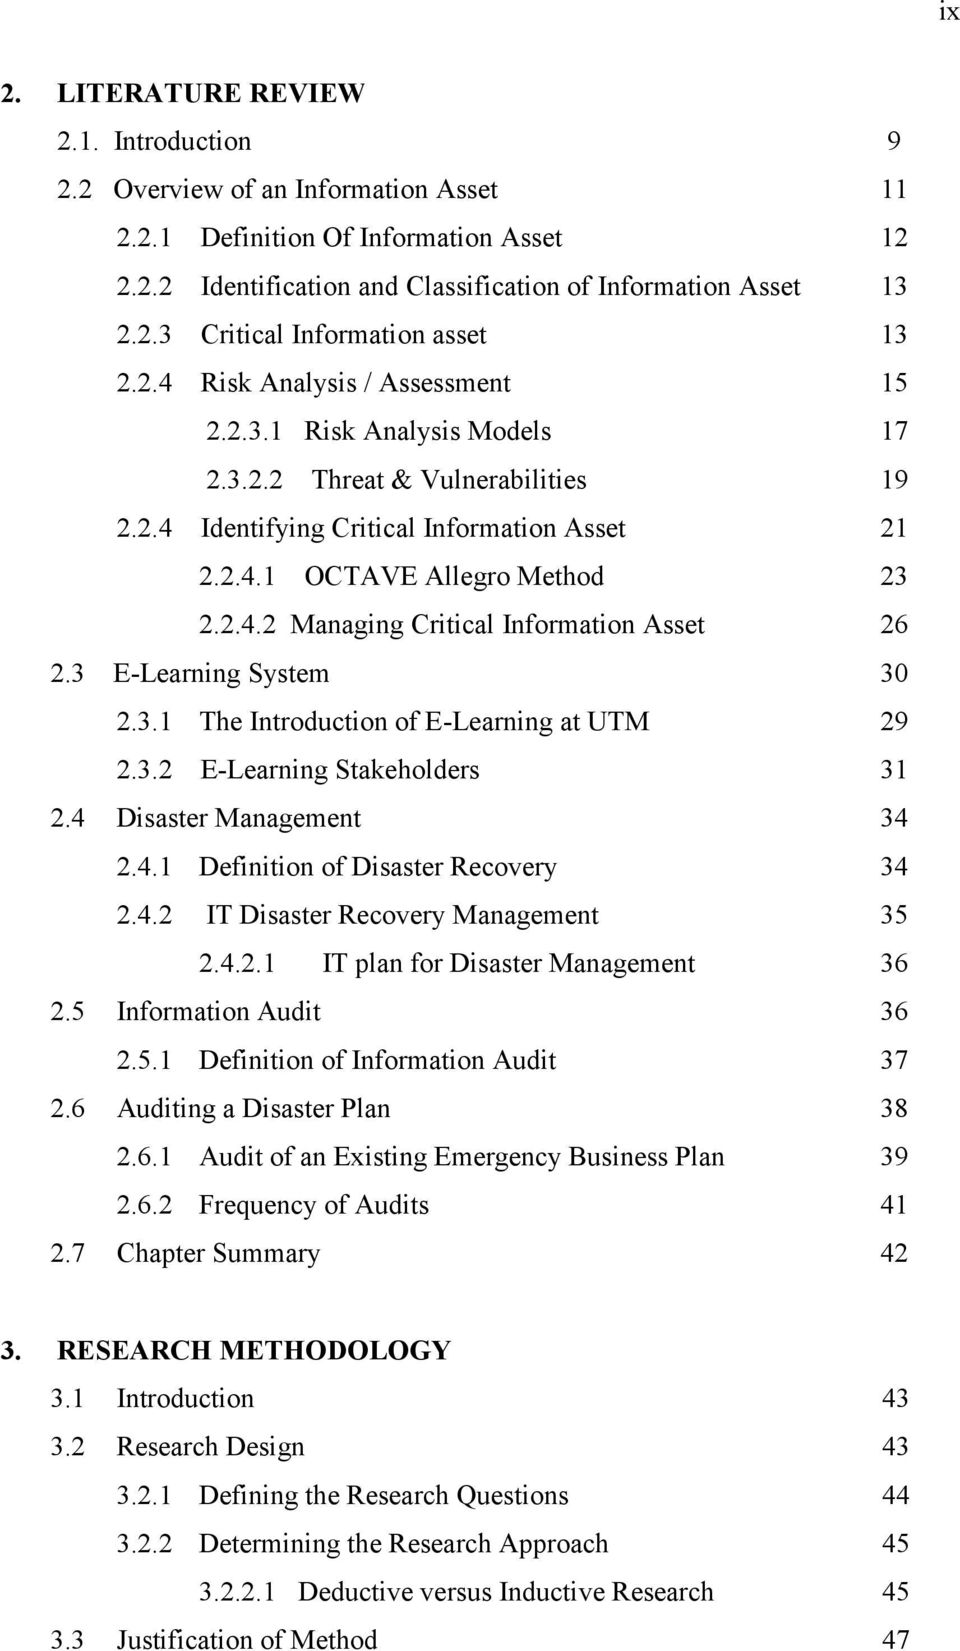 3 E-Learning System 30 2.3.1 The Introduction of E-Learning at UTM 29 2.3.2 E-Learning Stakeholders 31 2.4 Disaster Management 34 2.4.1 Definition of Disaster Recovery 34 2.4.2 IT Disaster Recovery Management 35 2.